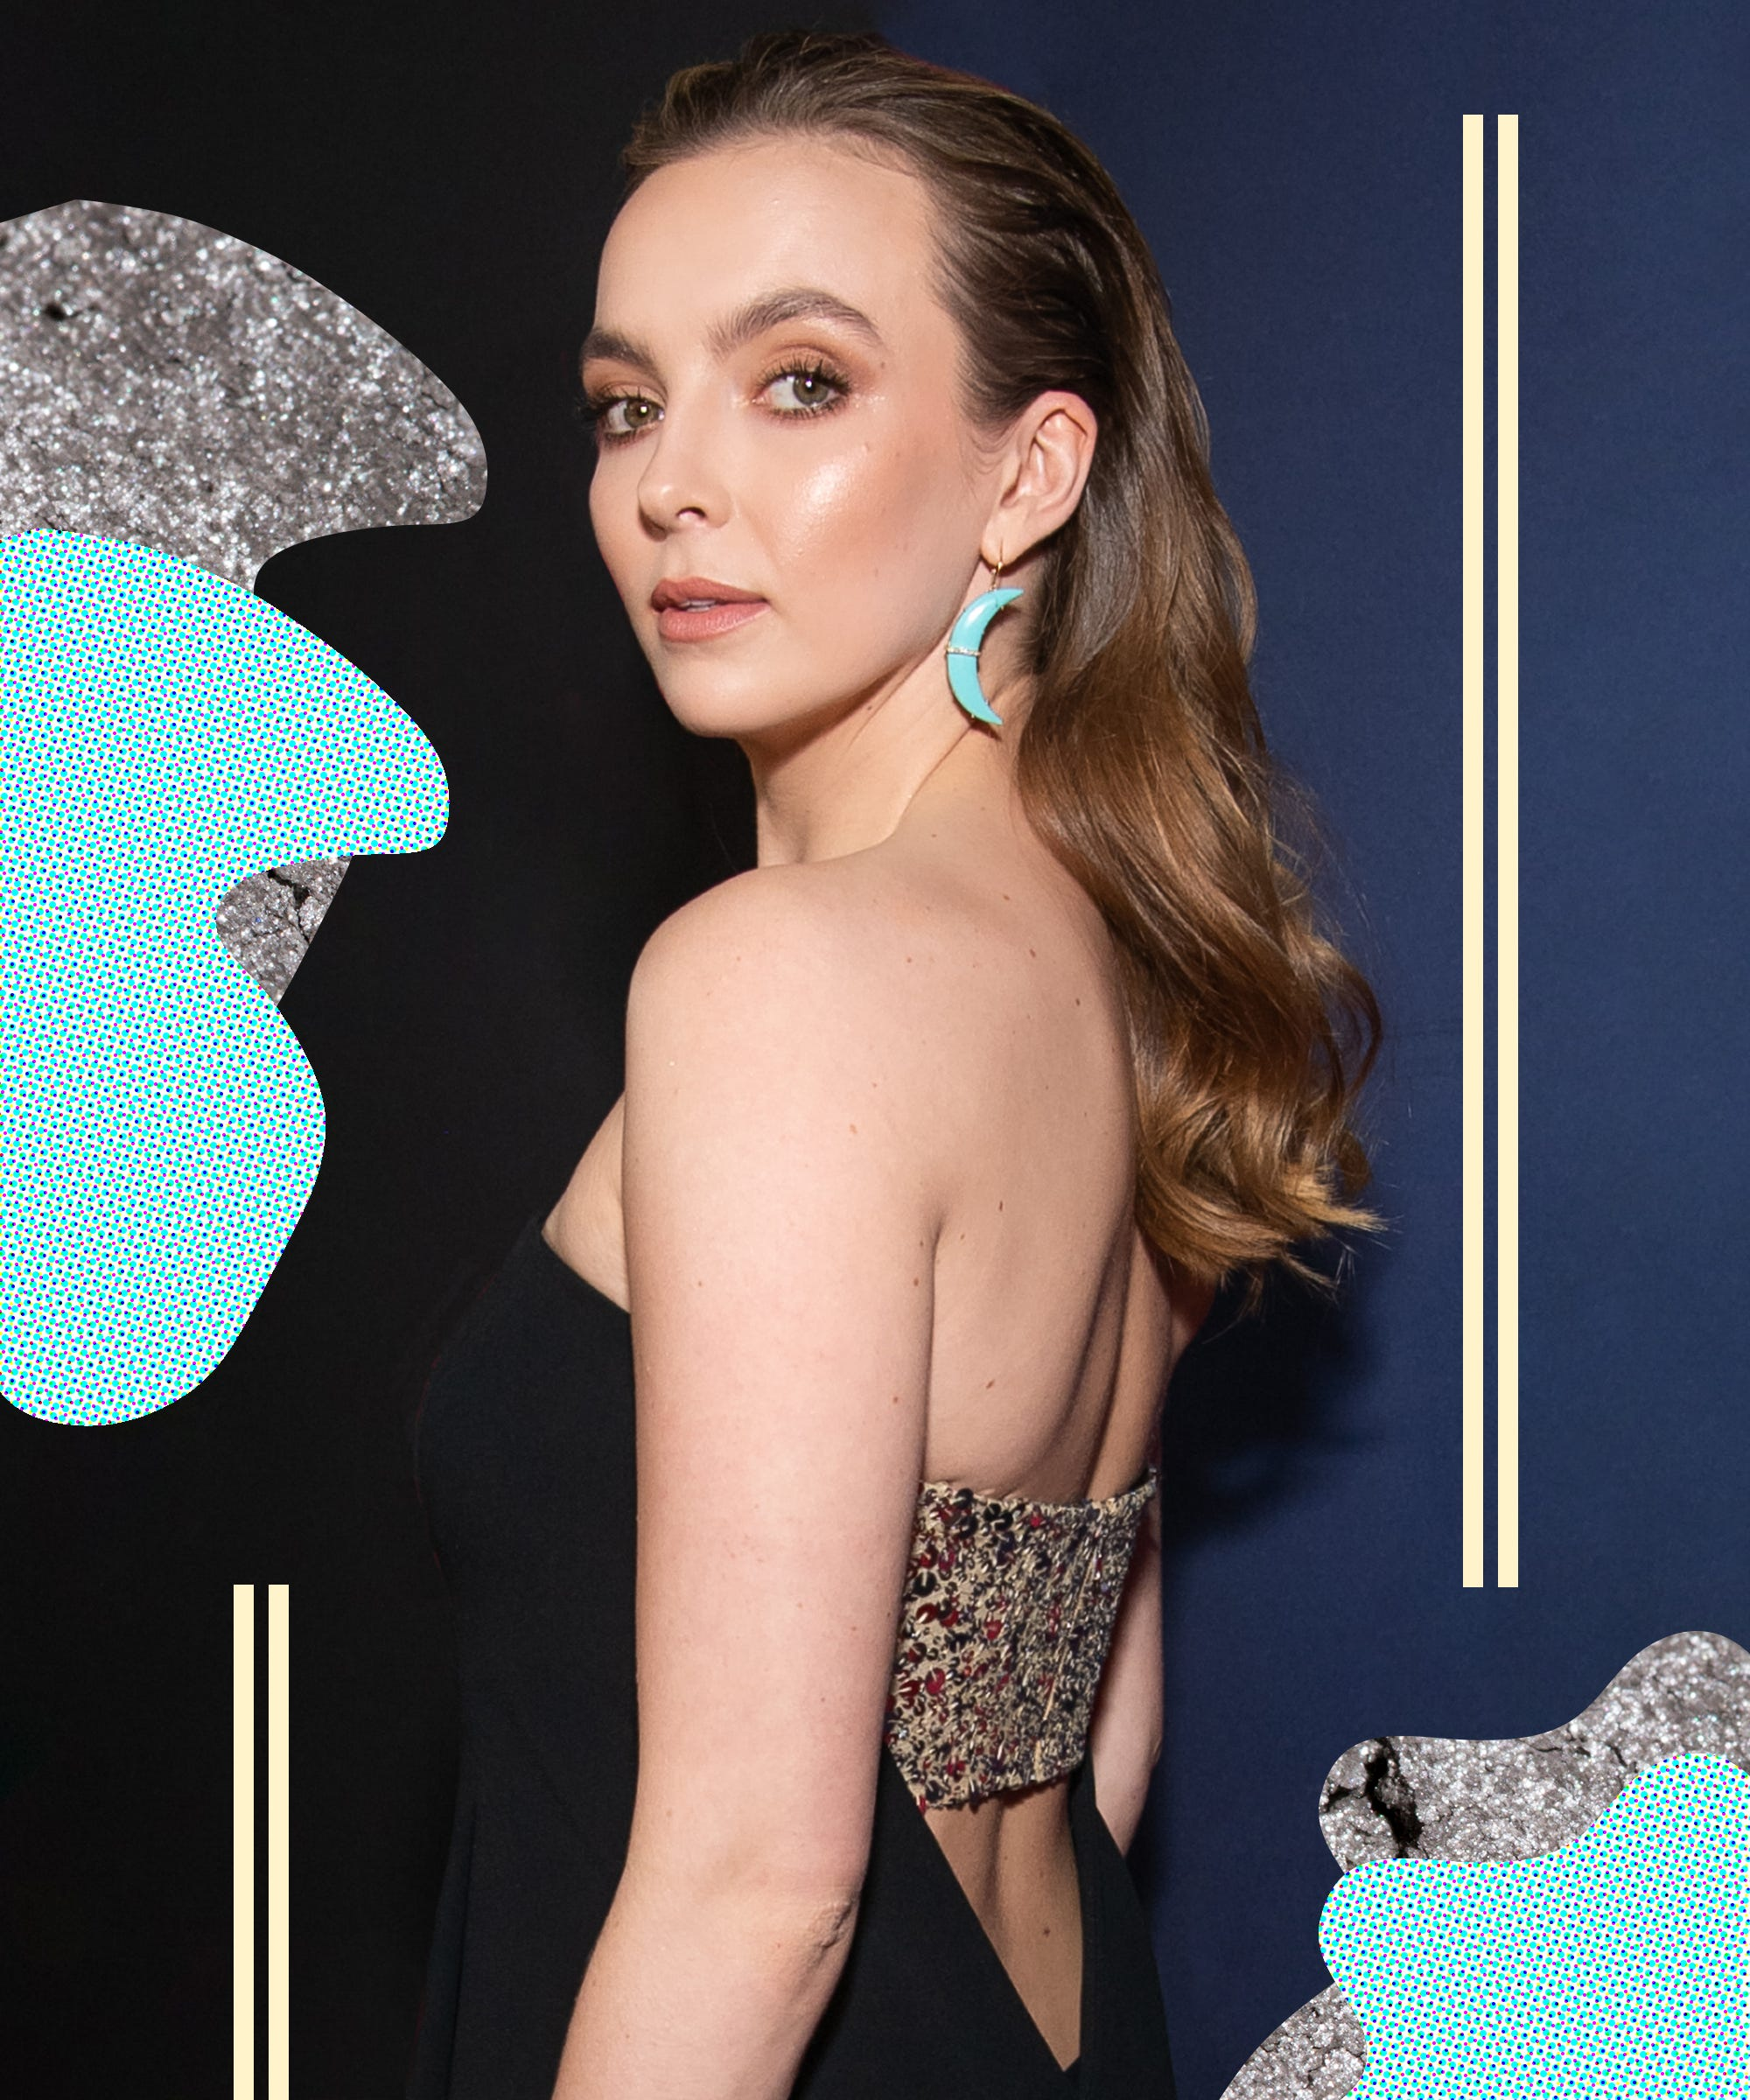 This $30 Highlighter Is The Key To Jodie Comer's Glowing Skin